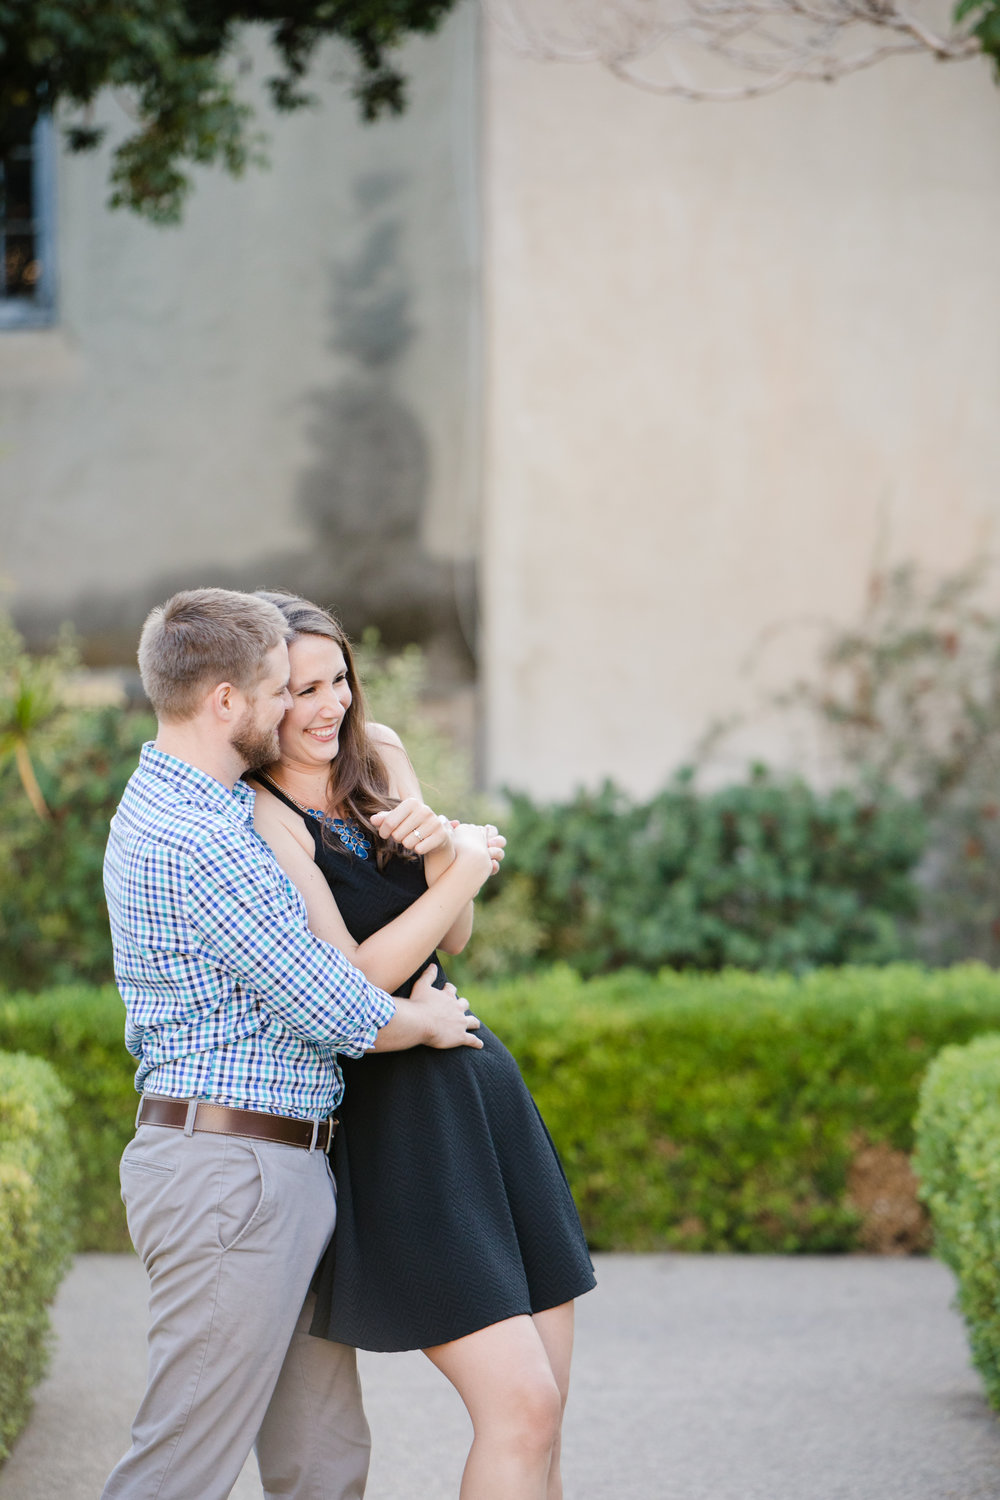 katherine_beth_photography_san_diego_wedding_photographer_San_diego_engagement_photos_Balboa_park_engagement_session_007.jpg